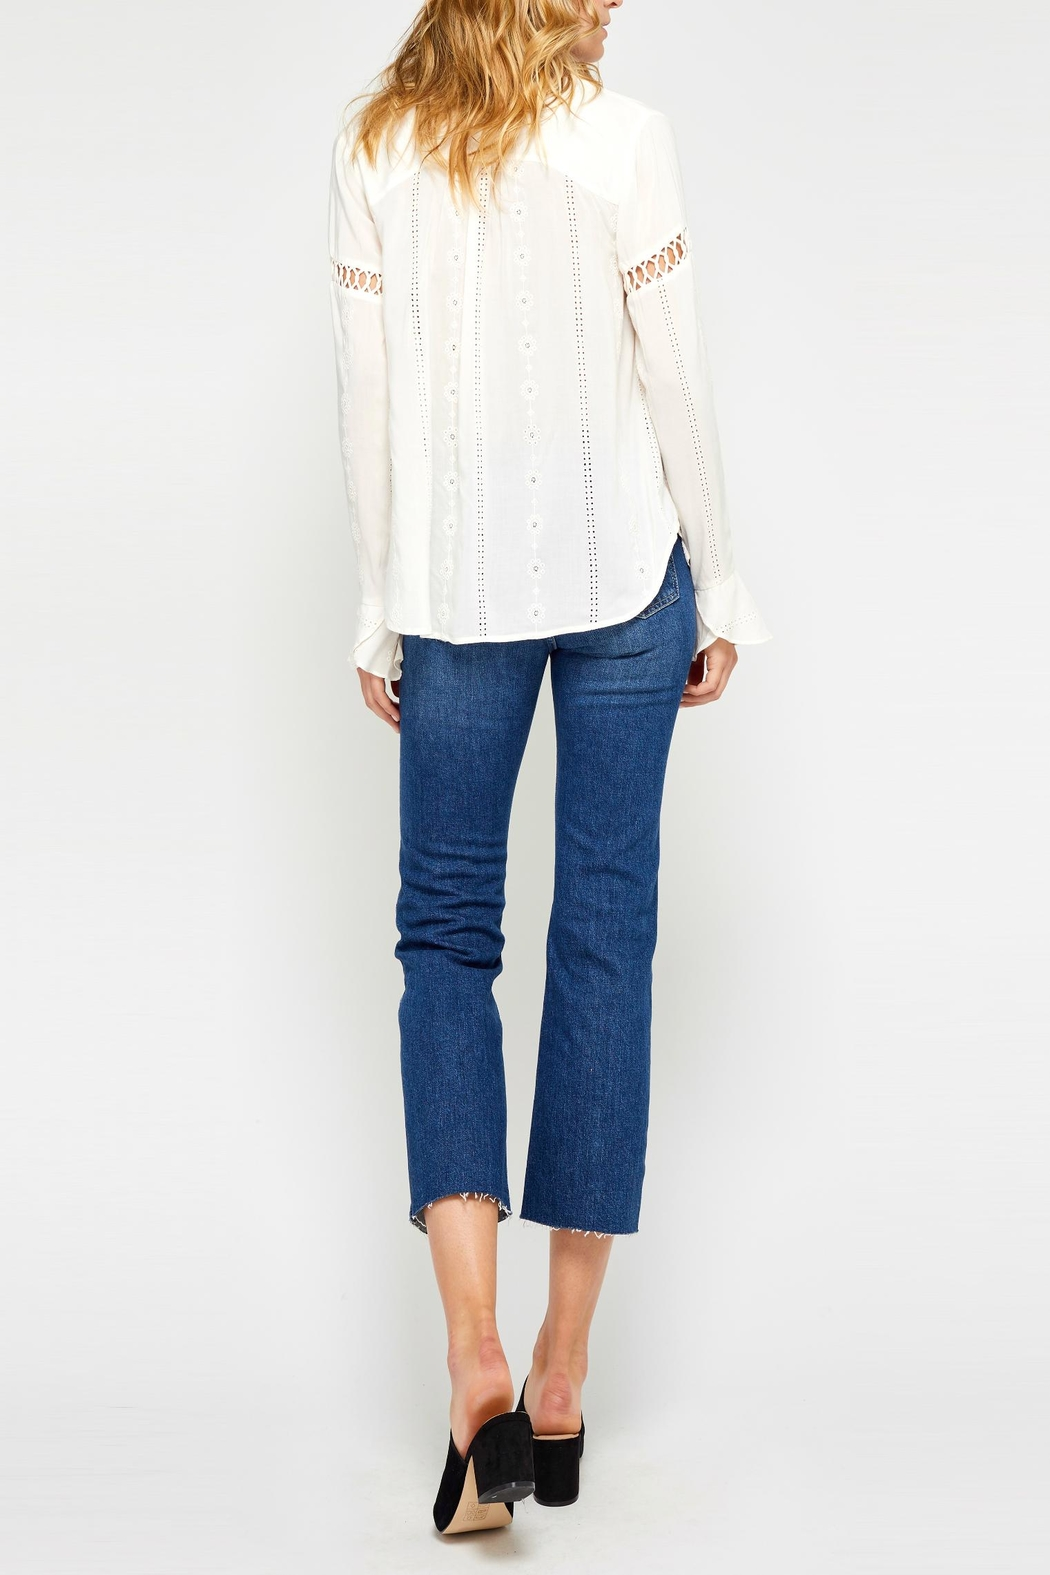 Gentle Fawn Carolyn Cream Blouse - Front Full Image